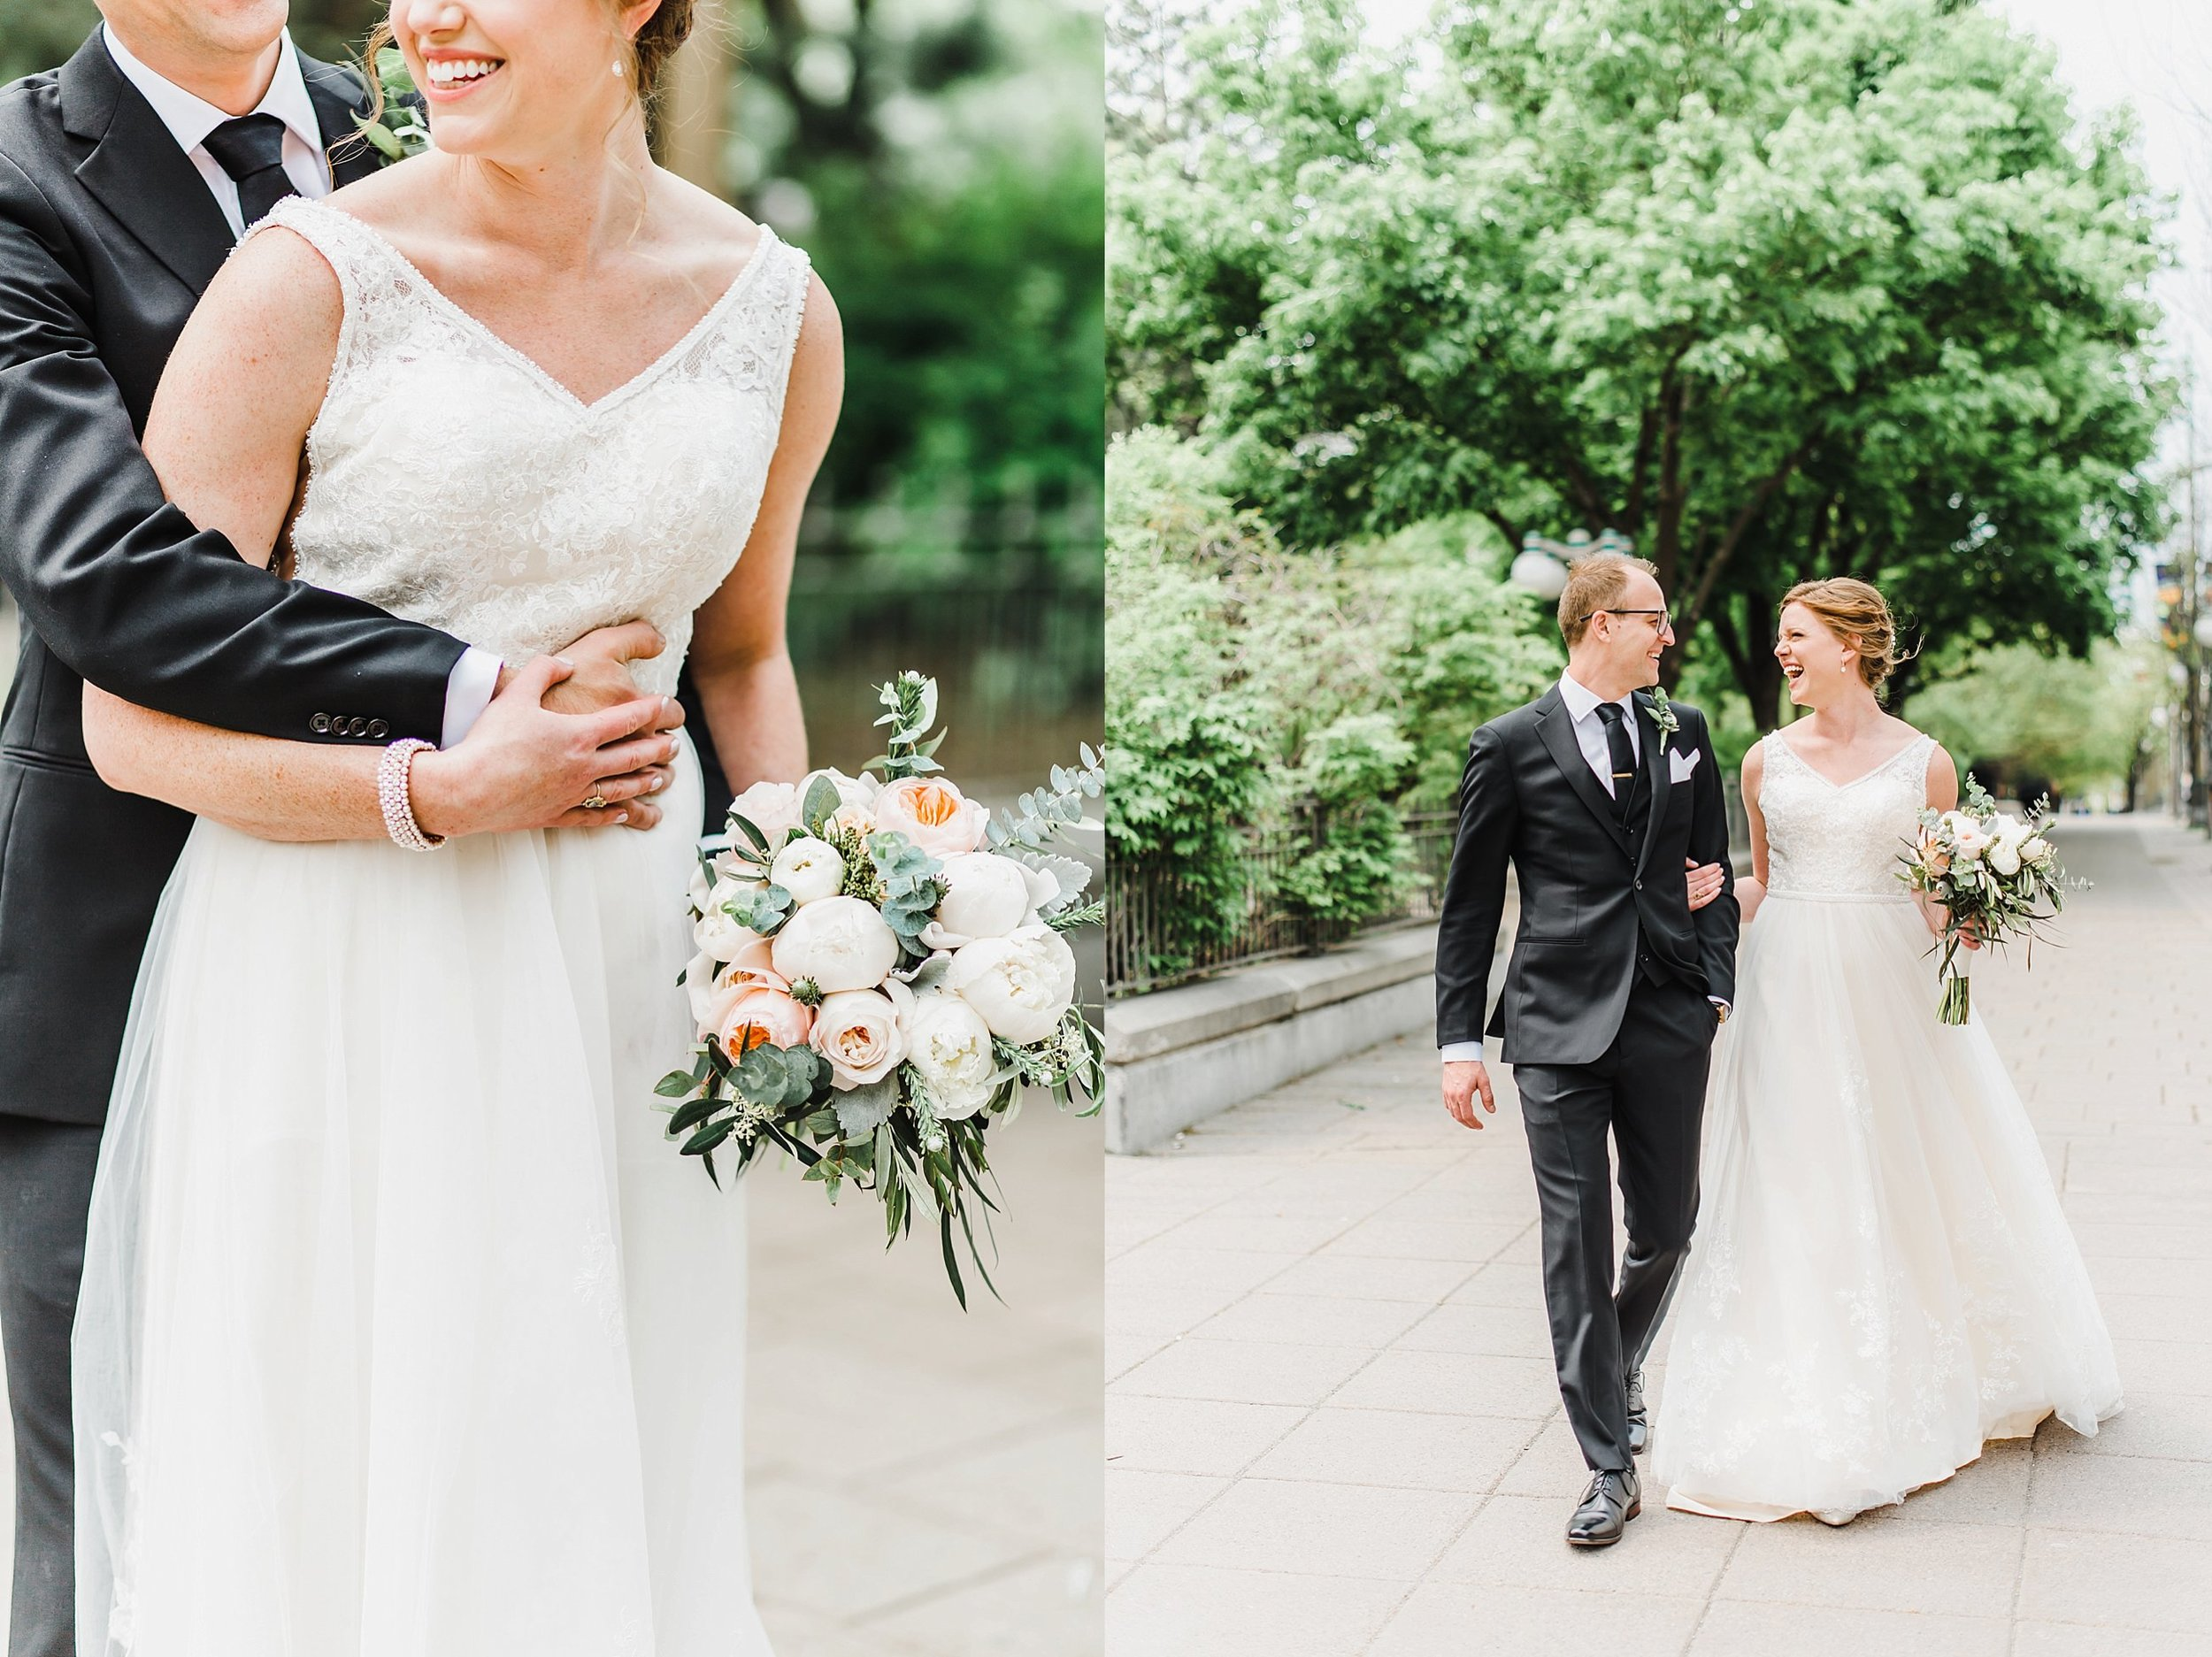 light airy indie fine art ottawa wedding photographer | Ali and Batoul Photography_0322.jpg